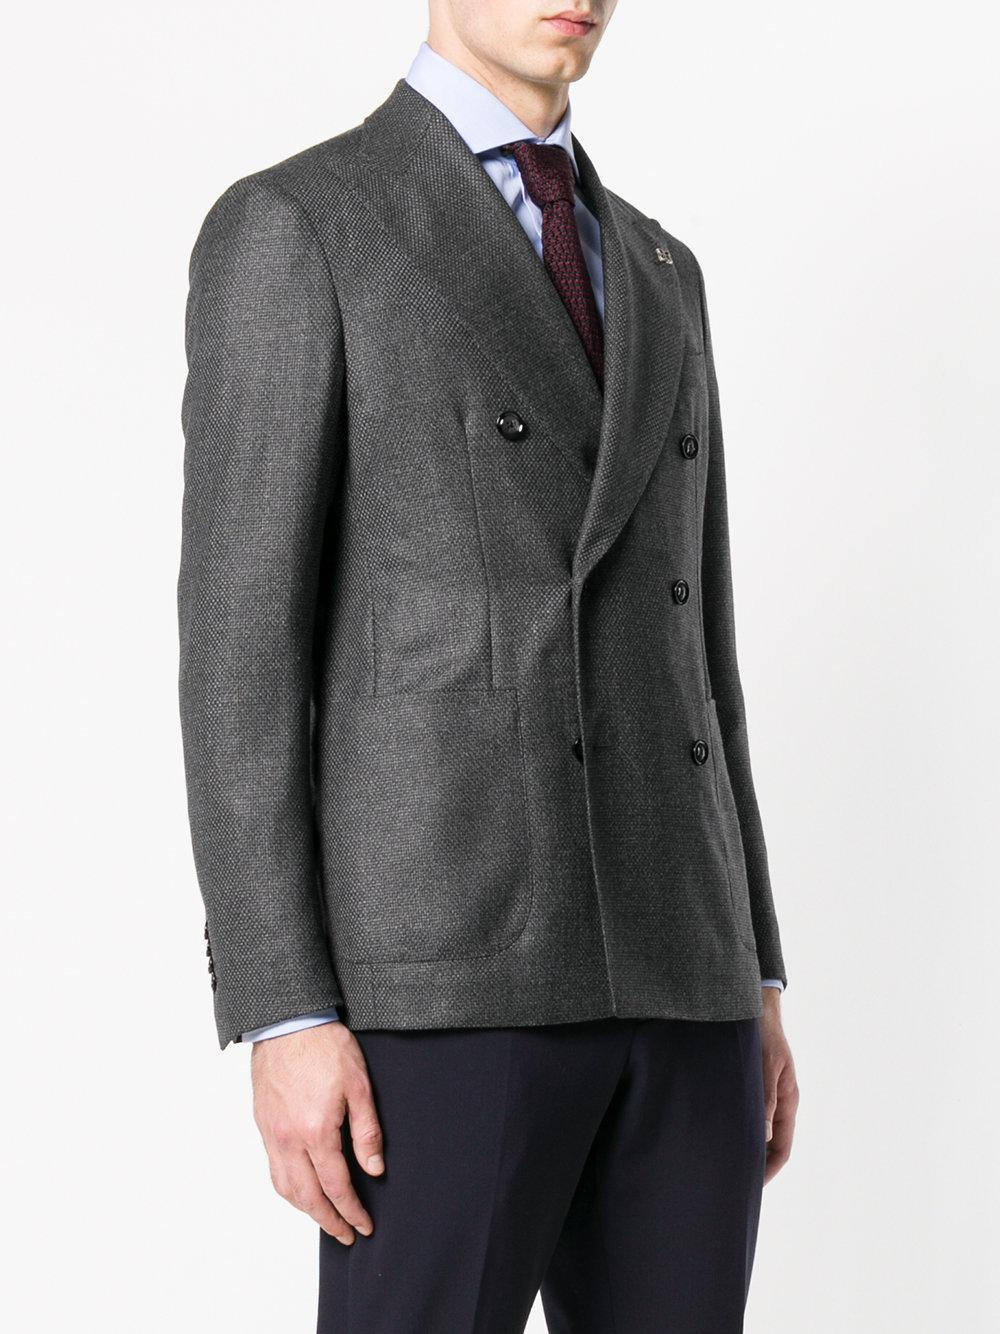 Tagliatore Wool Double Breasted Suit Jacket in Grey (Grey) for Men